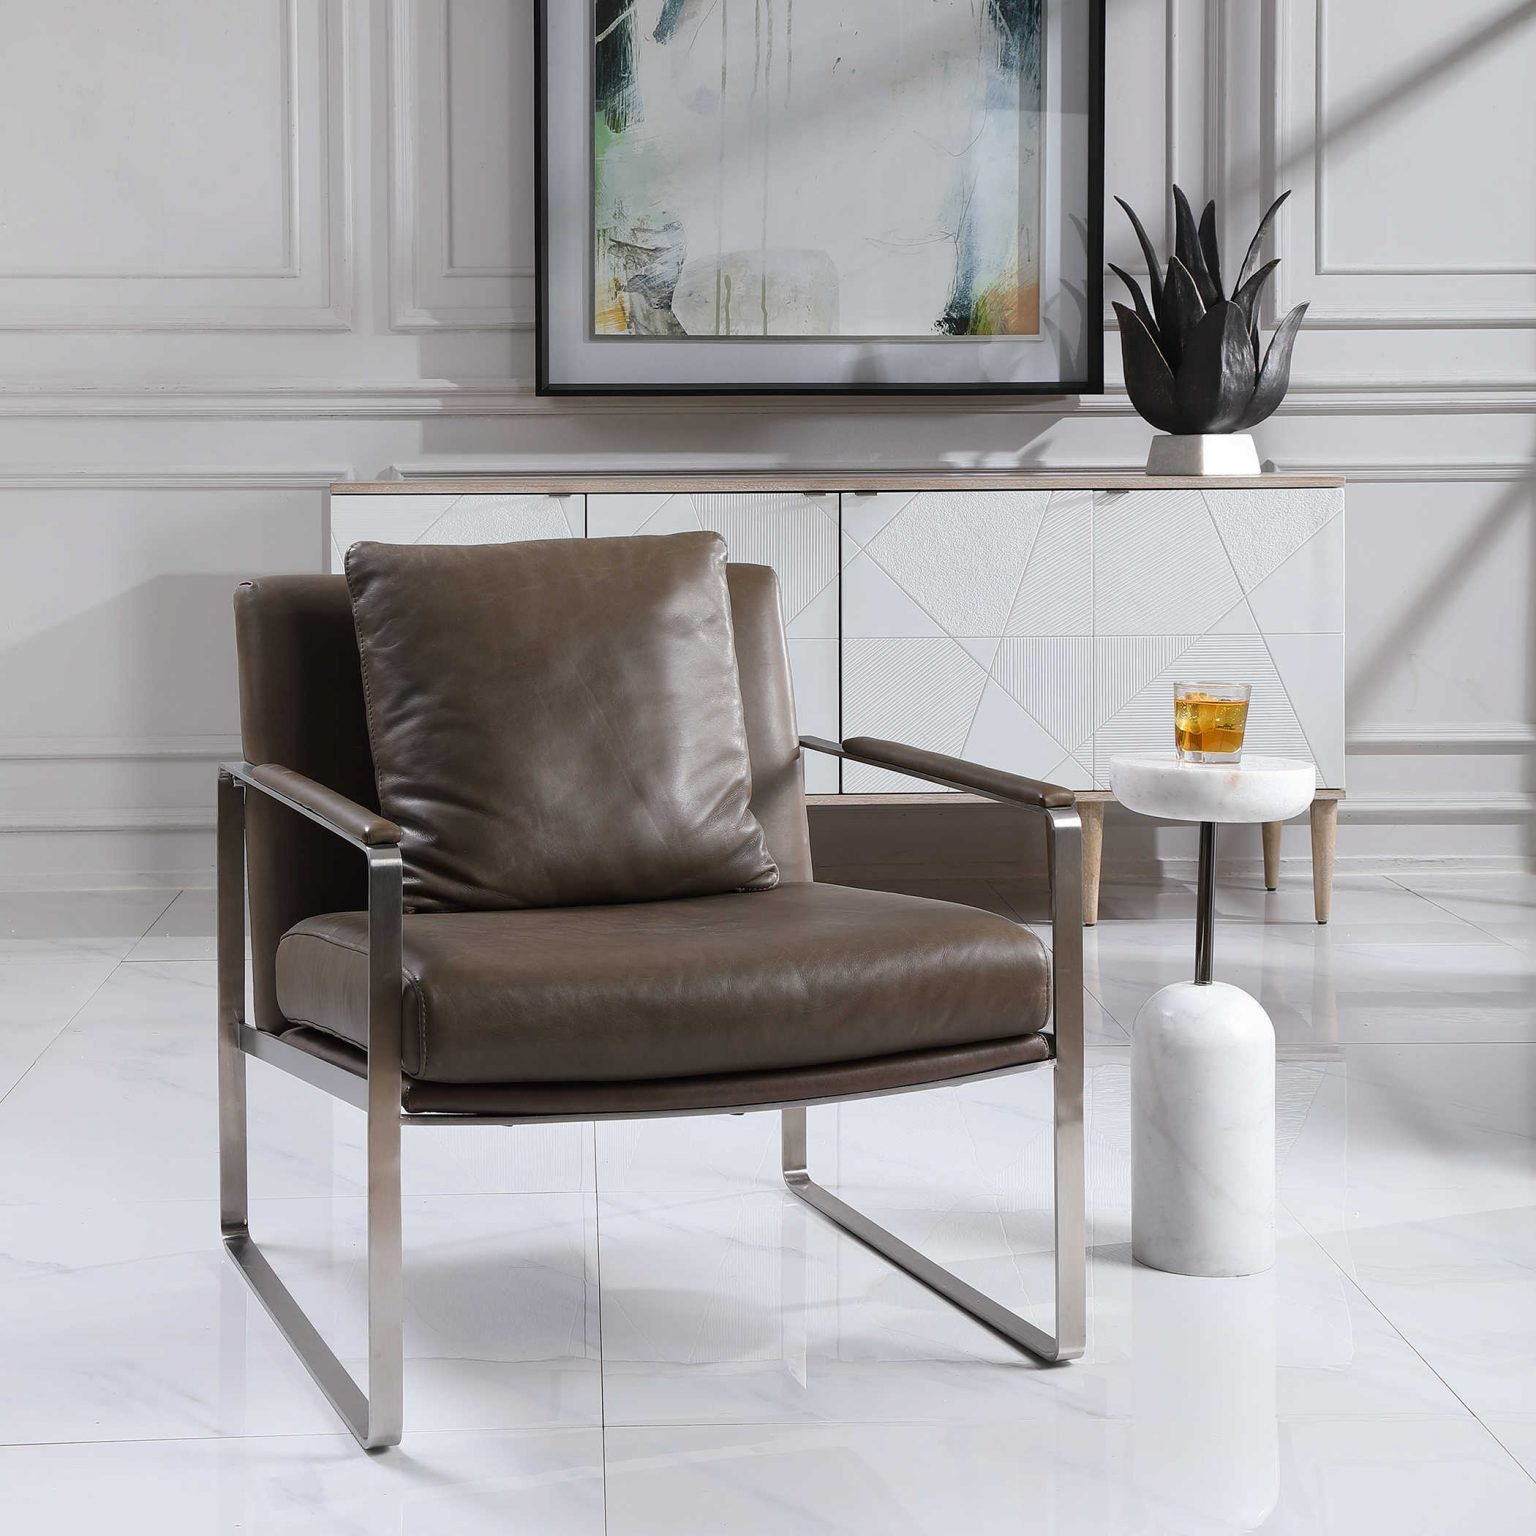 Square leather-padded chair is retro and on trend for 2021